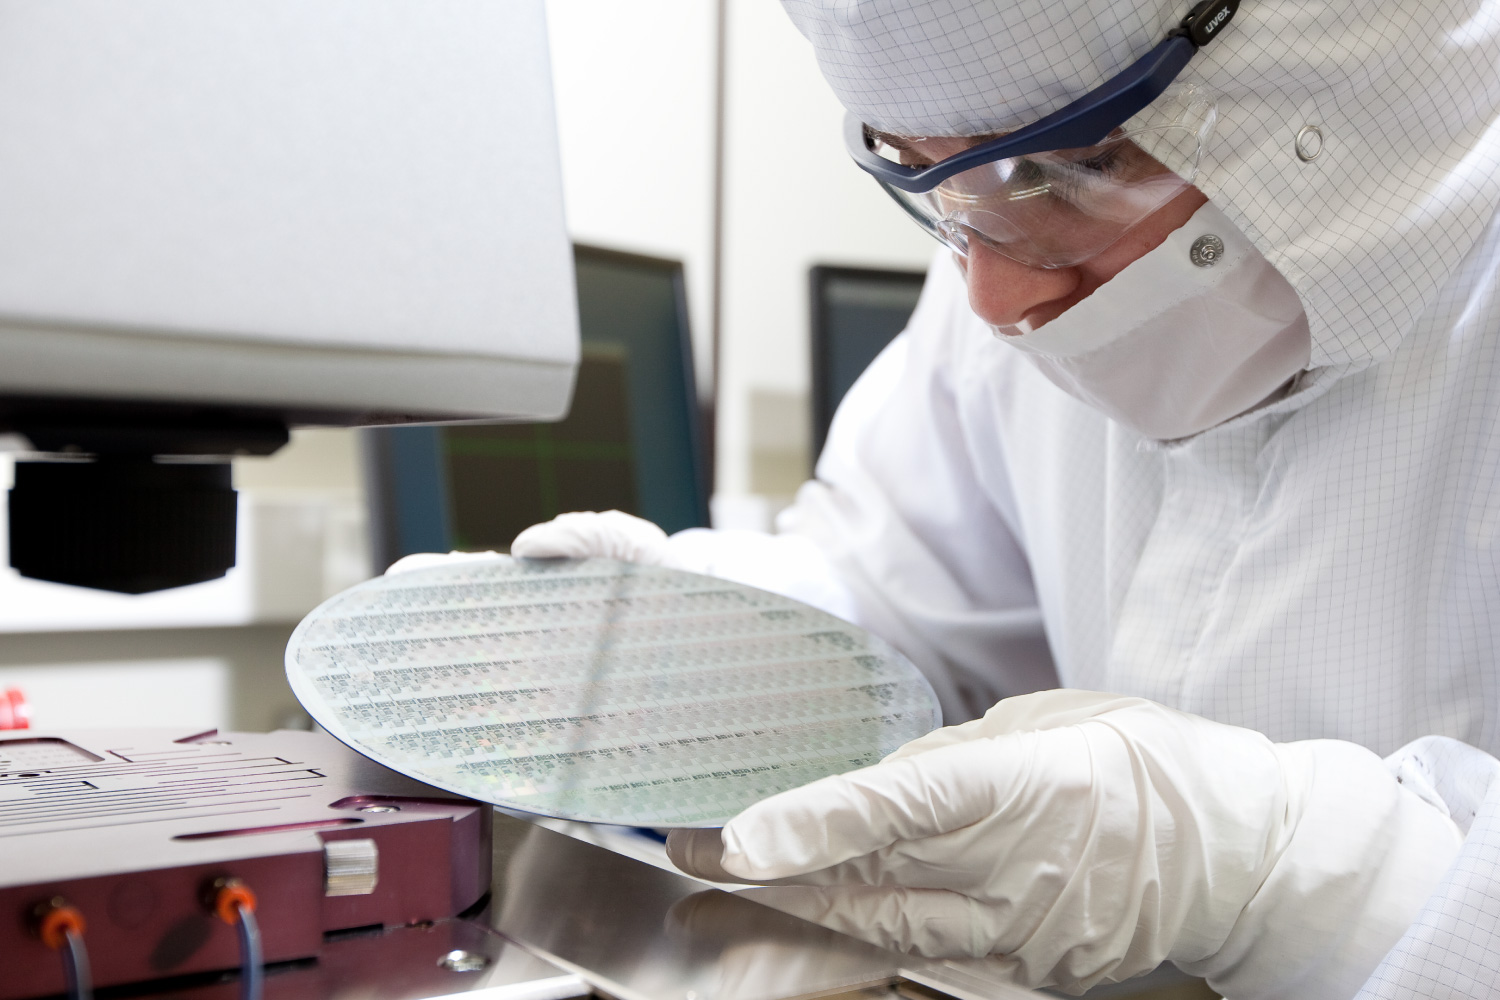 MEMS and embedded micro-devices prototyping and manufacturing